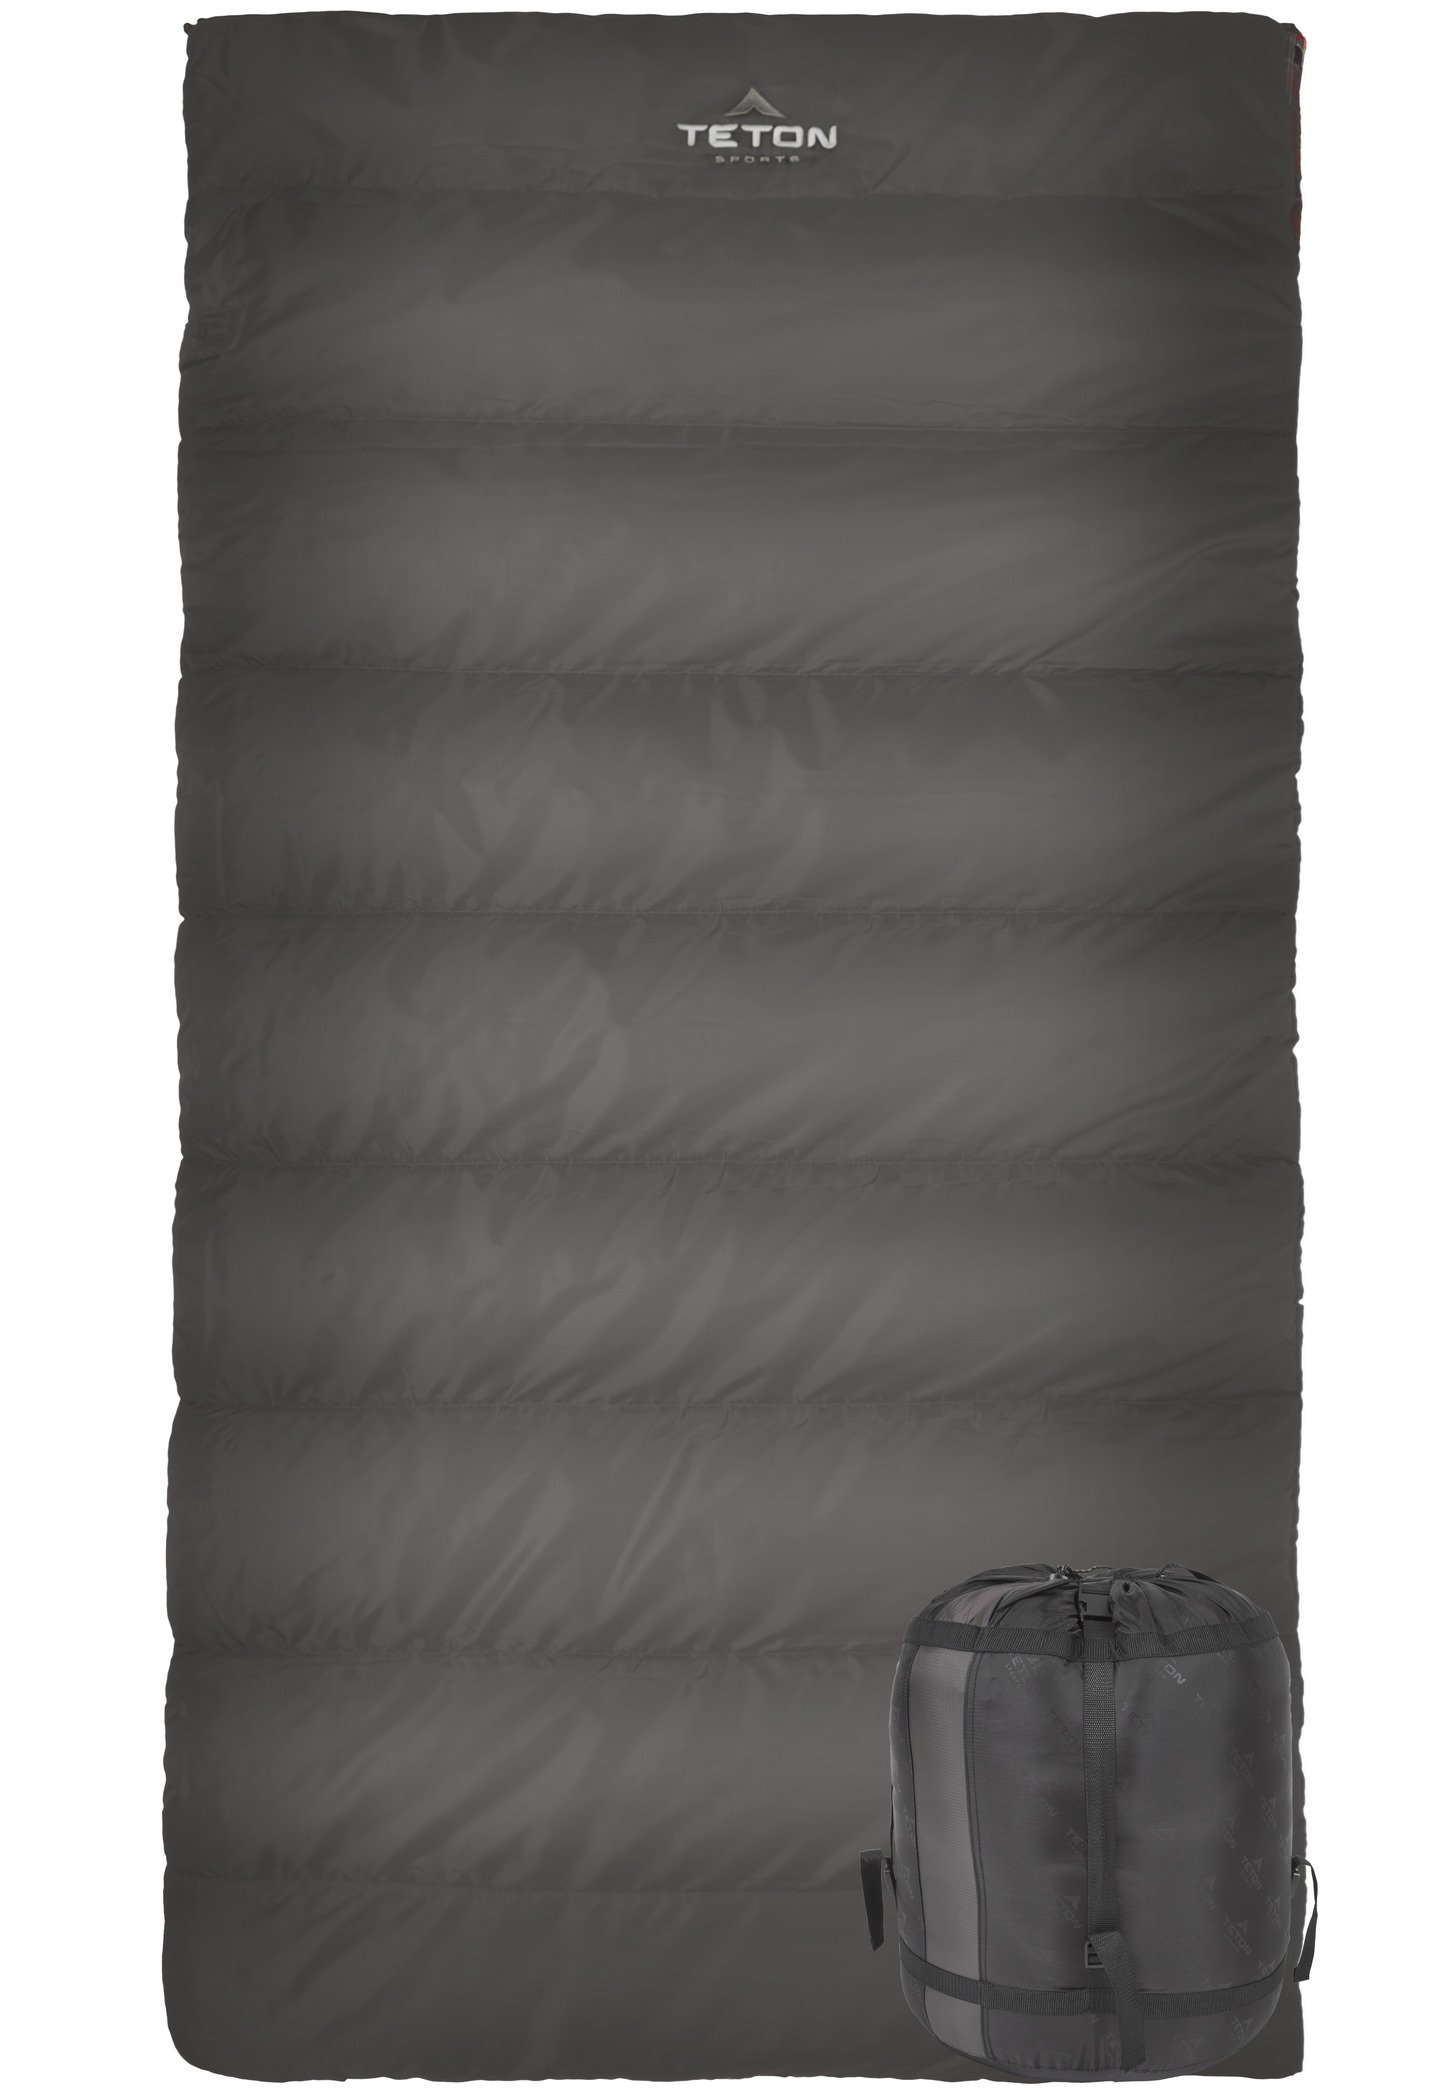 TETON Sports Celsius Hybrid XL Sleeping Bag Lightweight Sleeping Bag Great For Cold Weather Camping And Hunting Great To Come Back To After A Long Day On The Trail Compression Sack Included